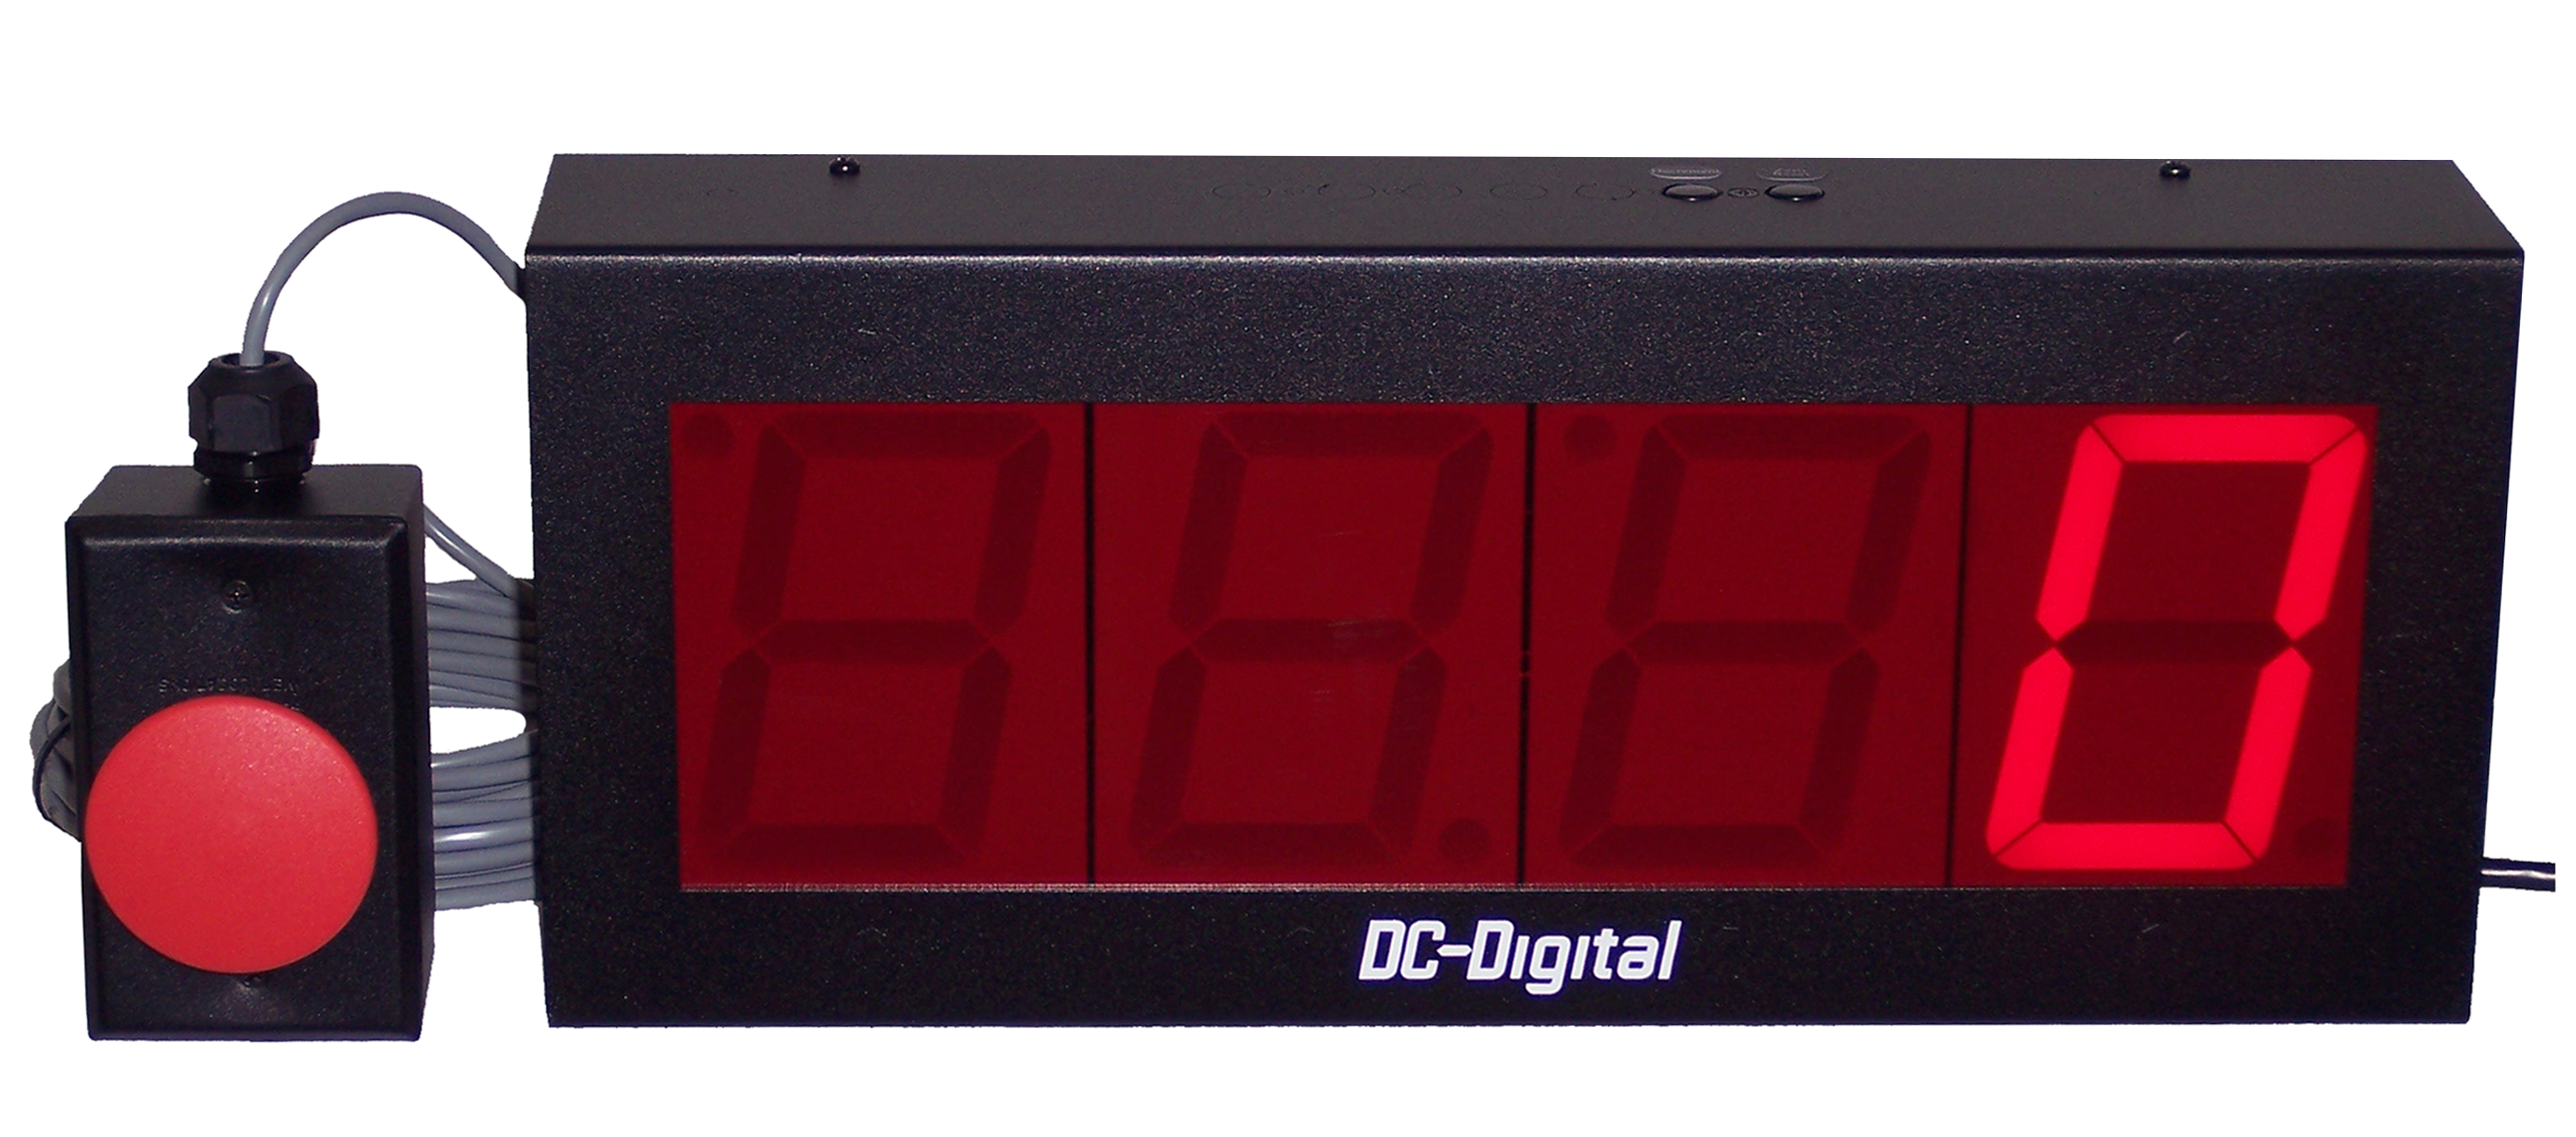 DC-40C 4 inch digital counter with large remote increment